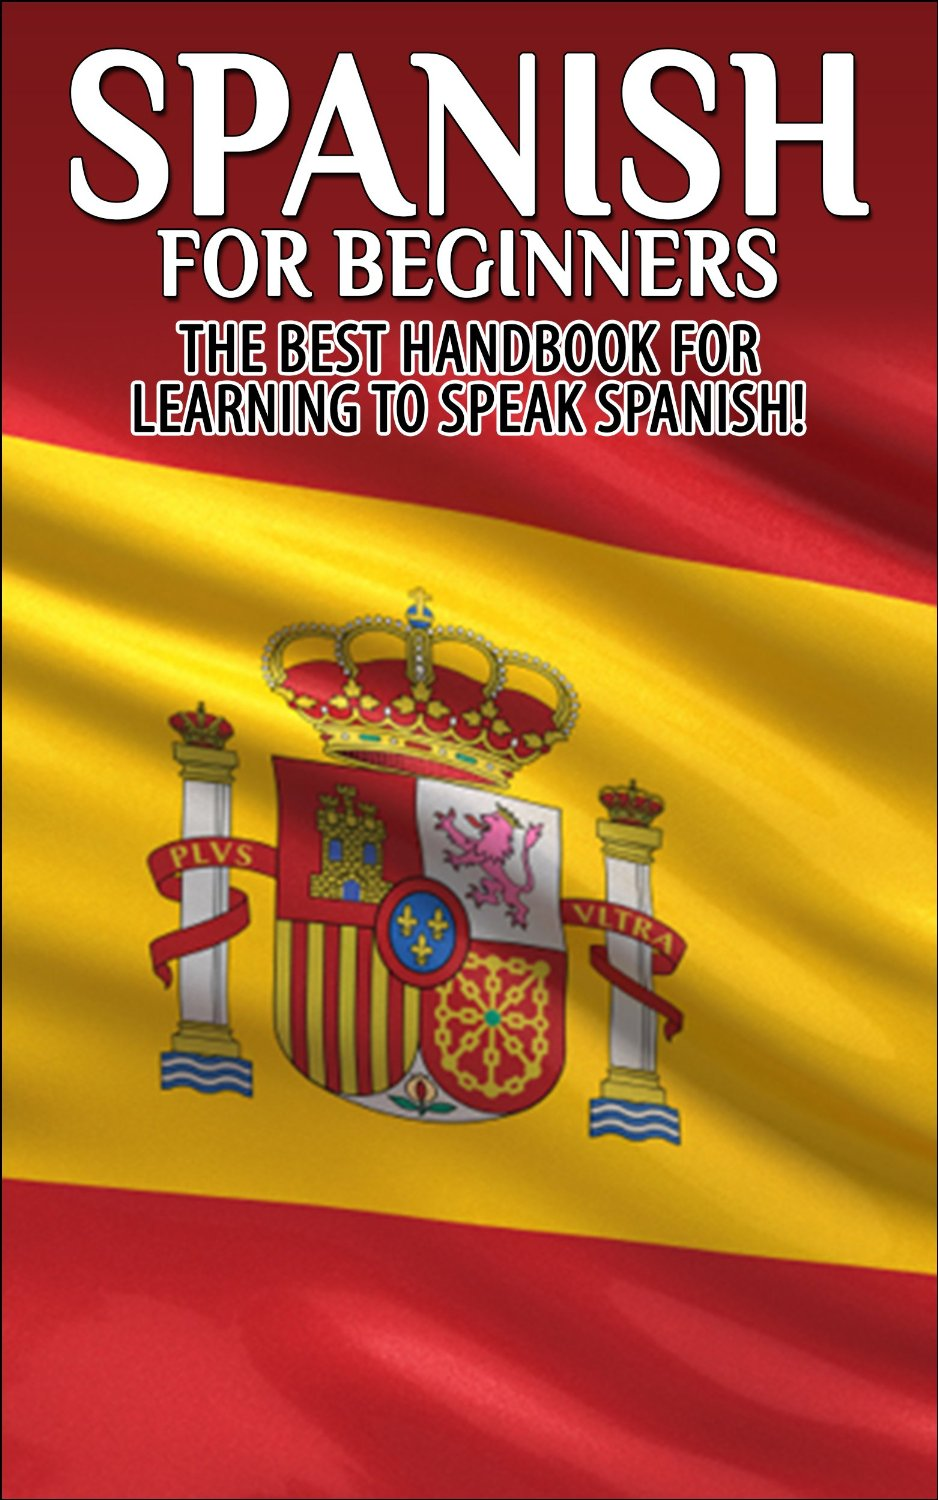 Books learn outline in spanish